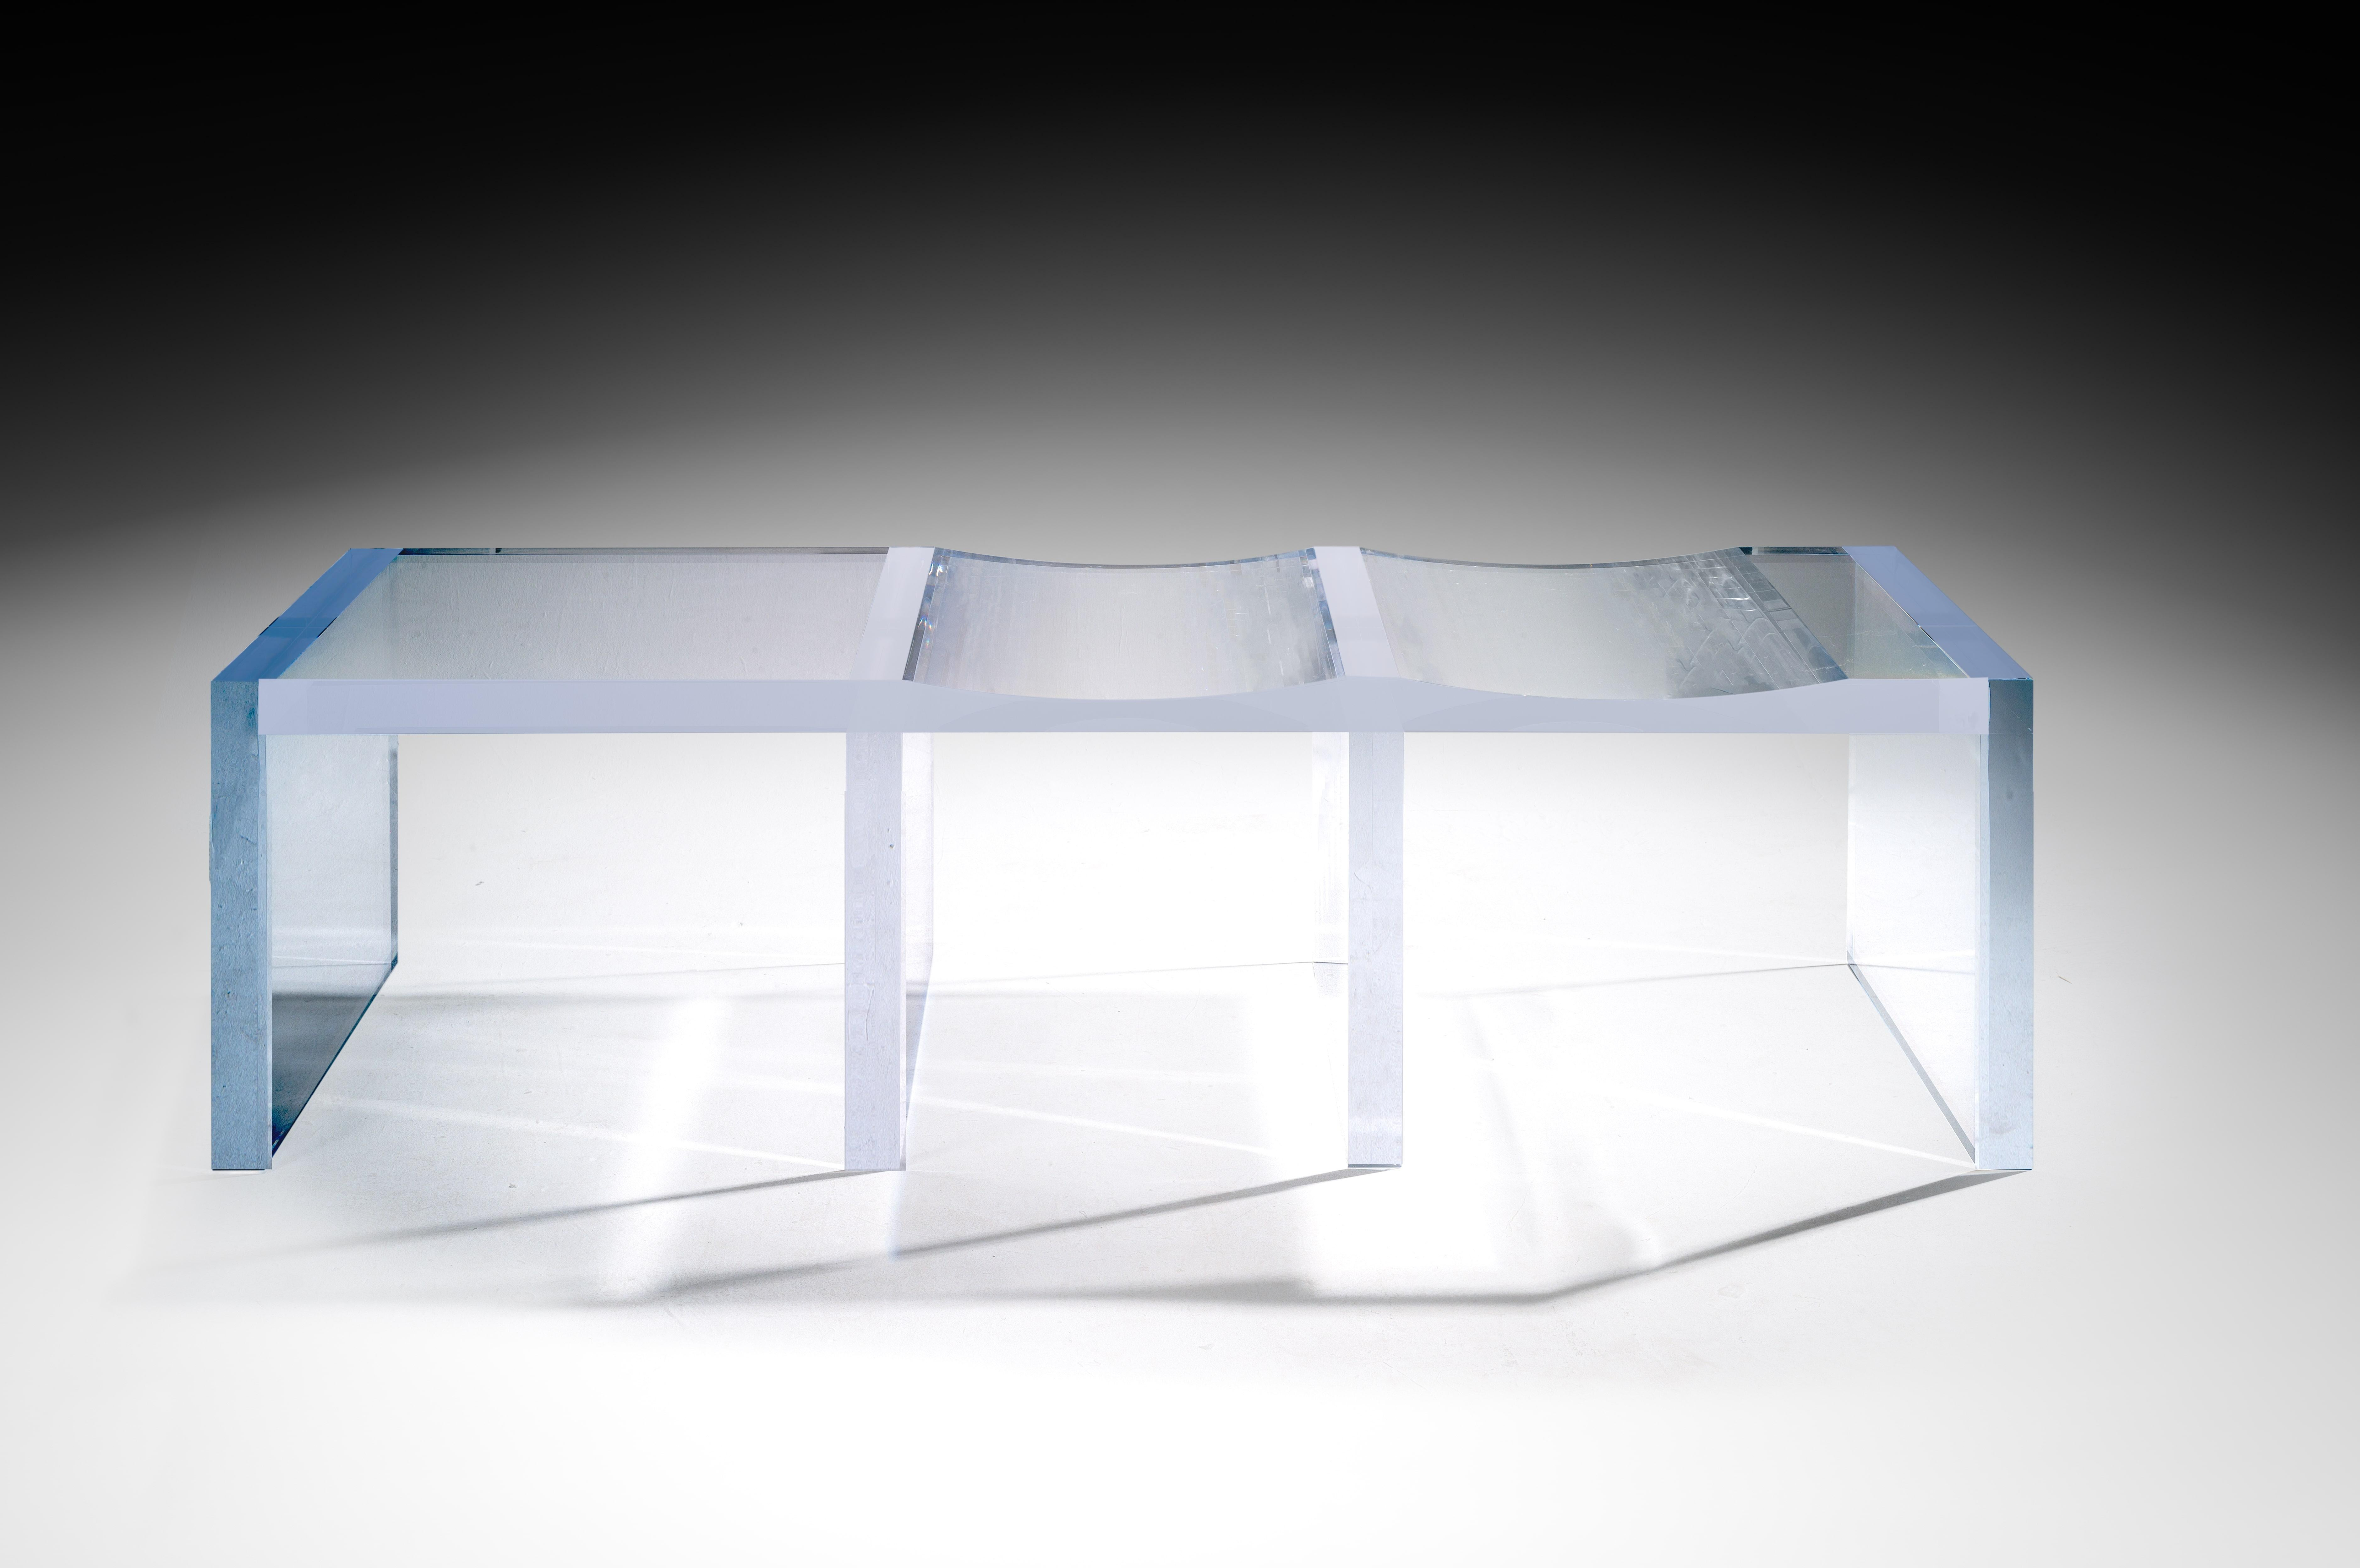 Ghost Altuglas Bench By Charly Bounan Hand Sculpted Altuglas Design Artwork  Dimensions: 200 X